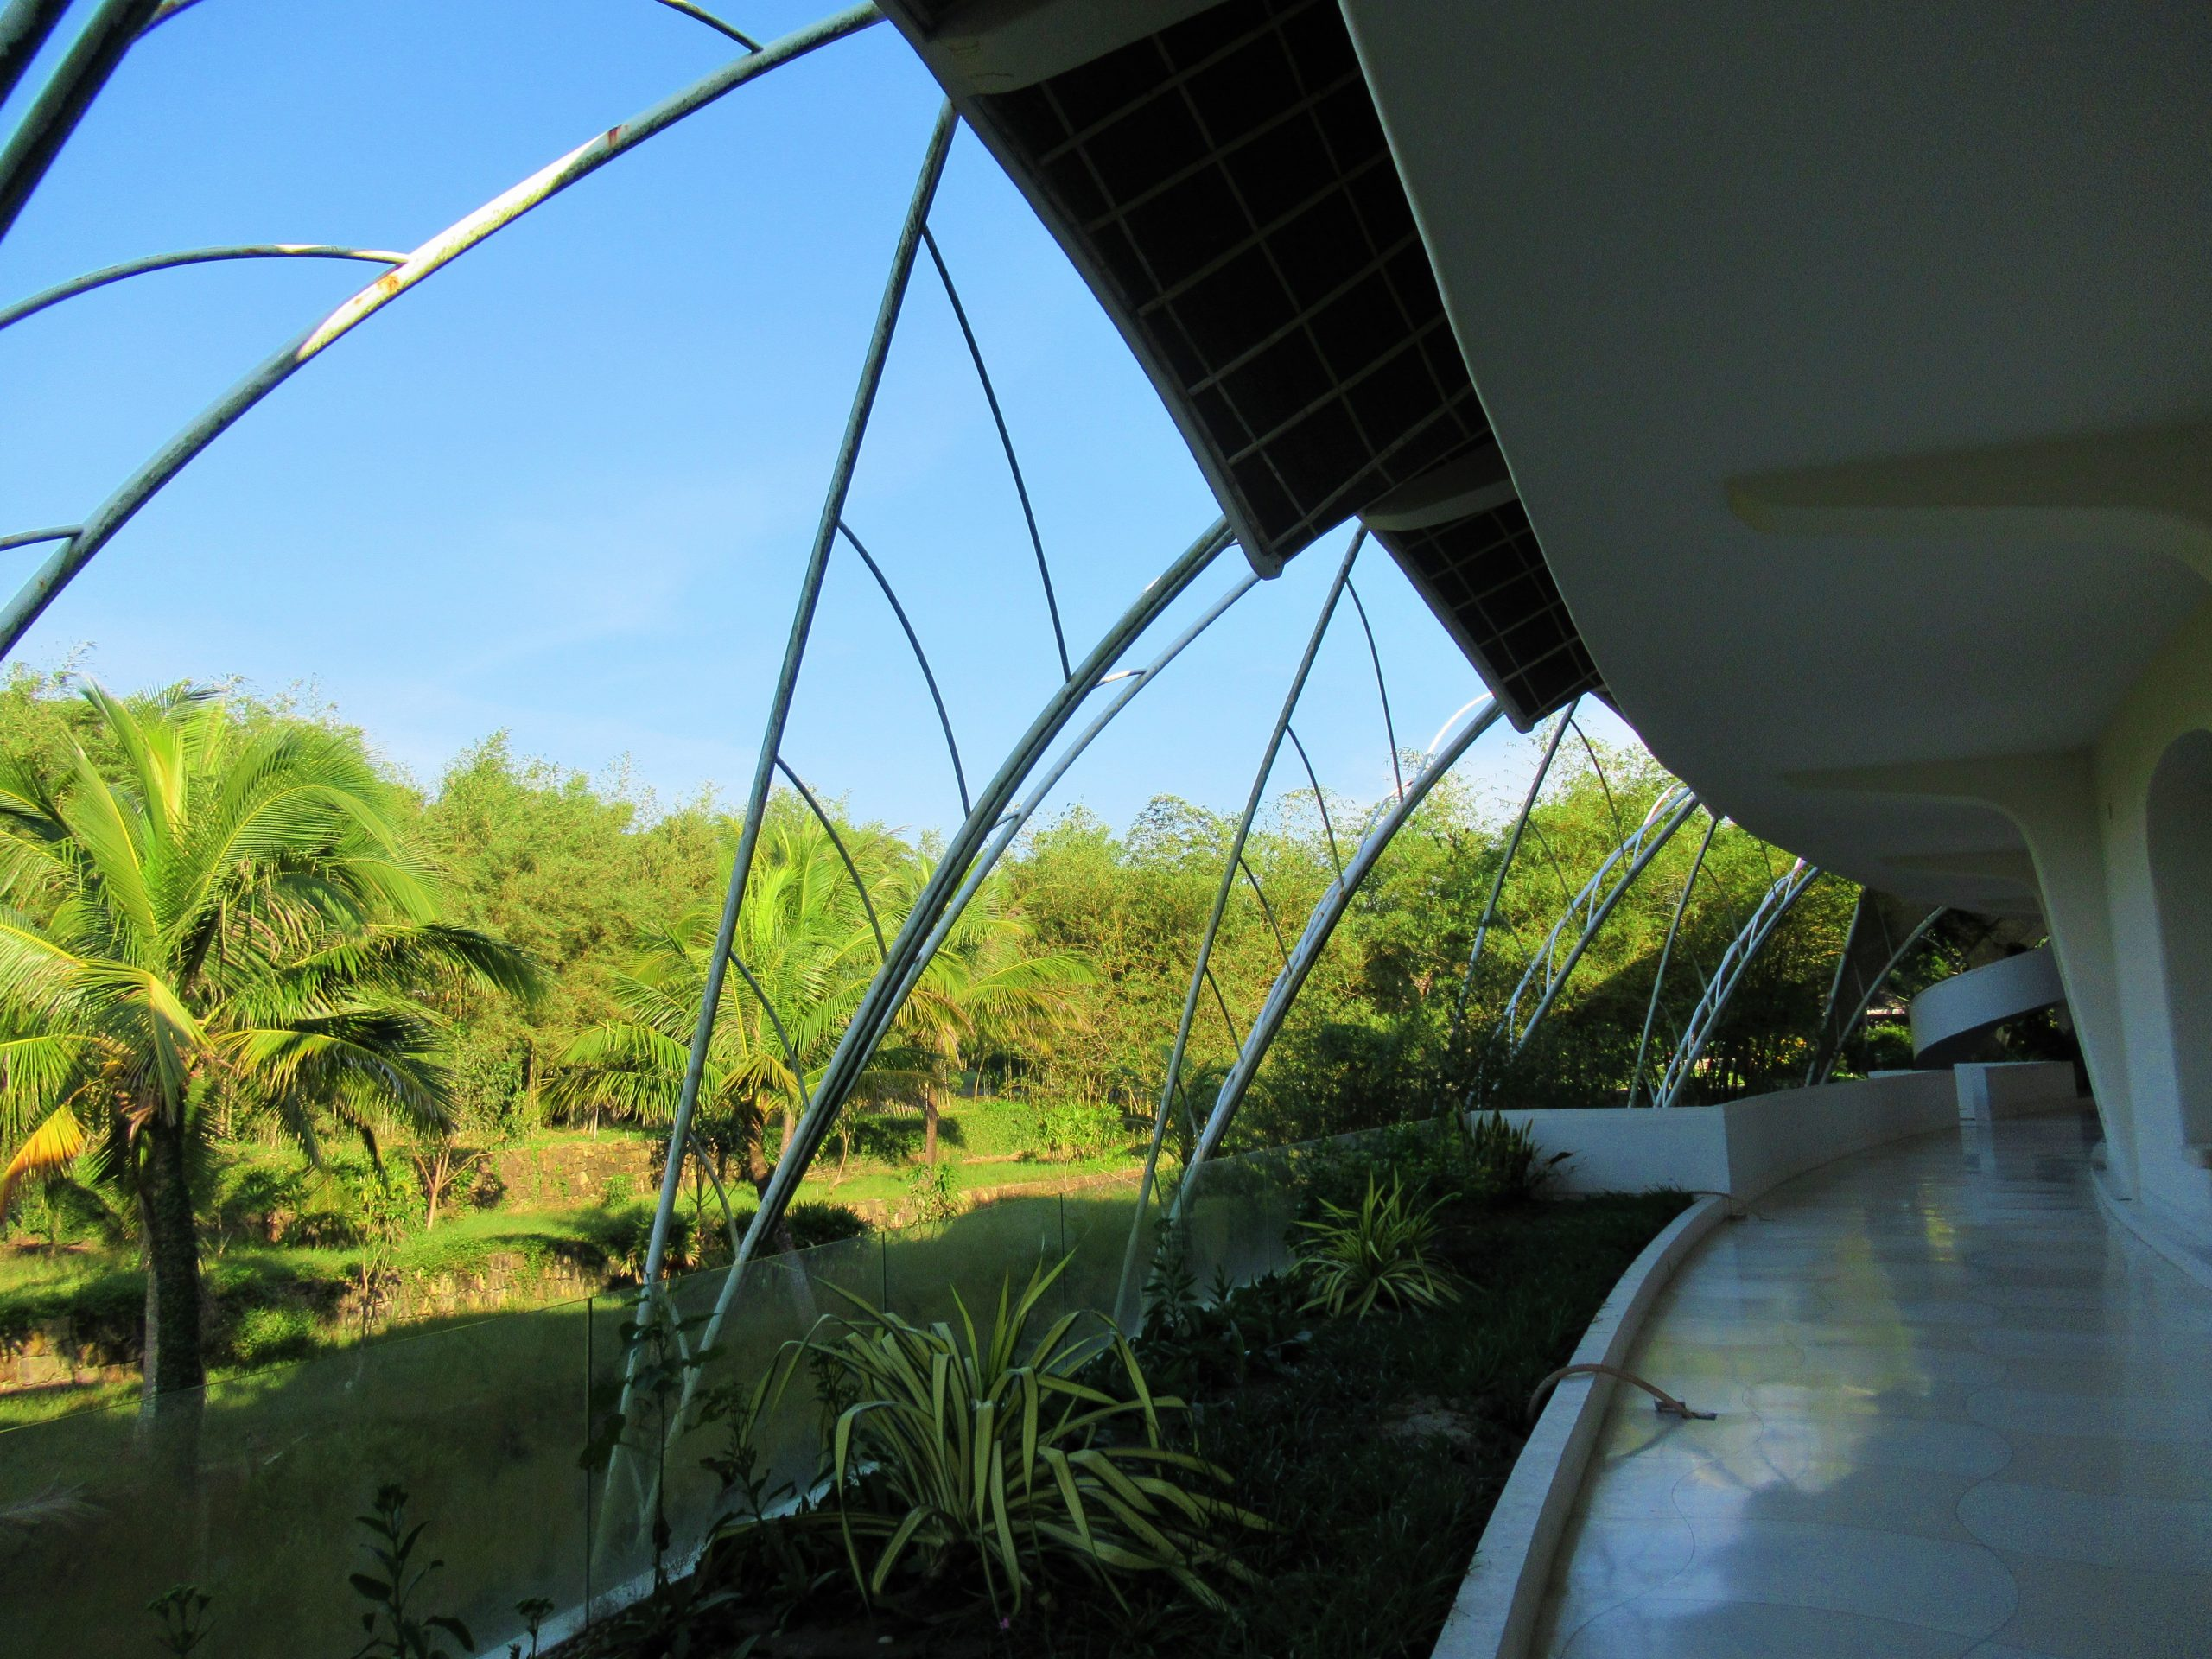 Back of main guest room structure, The Shells Resort, Phu Quoc Island, Vietnam